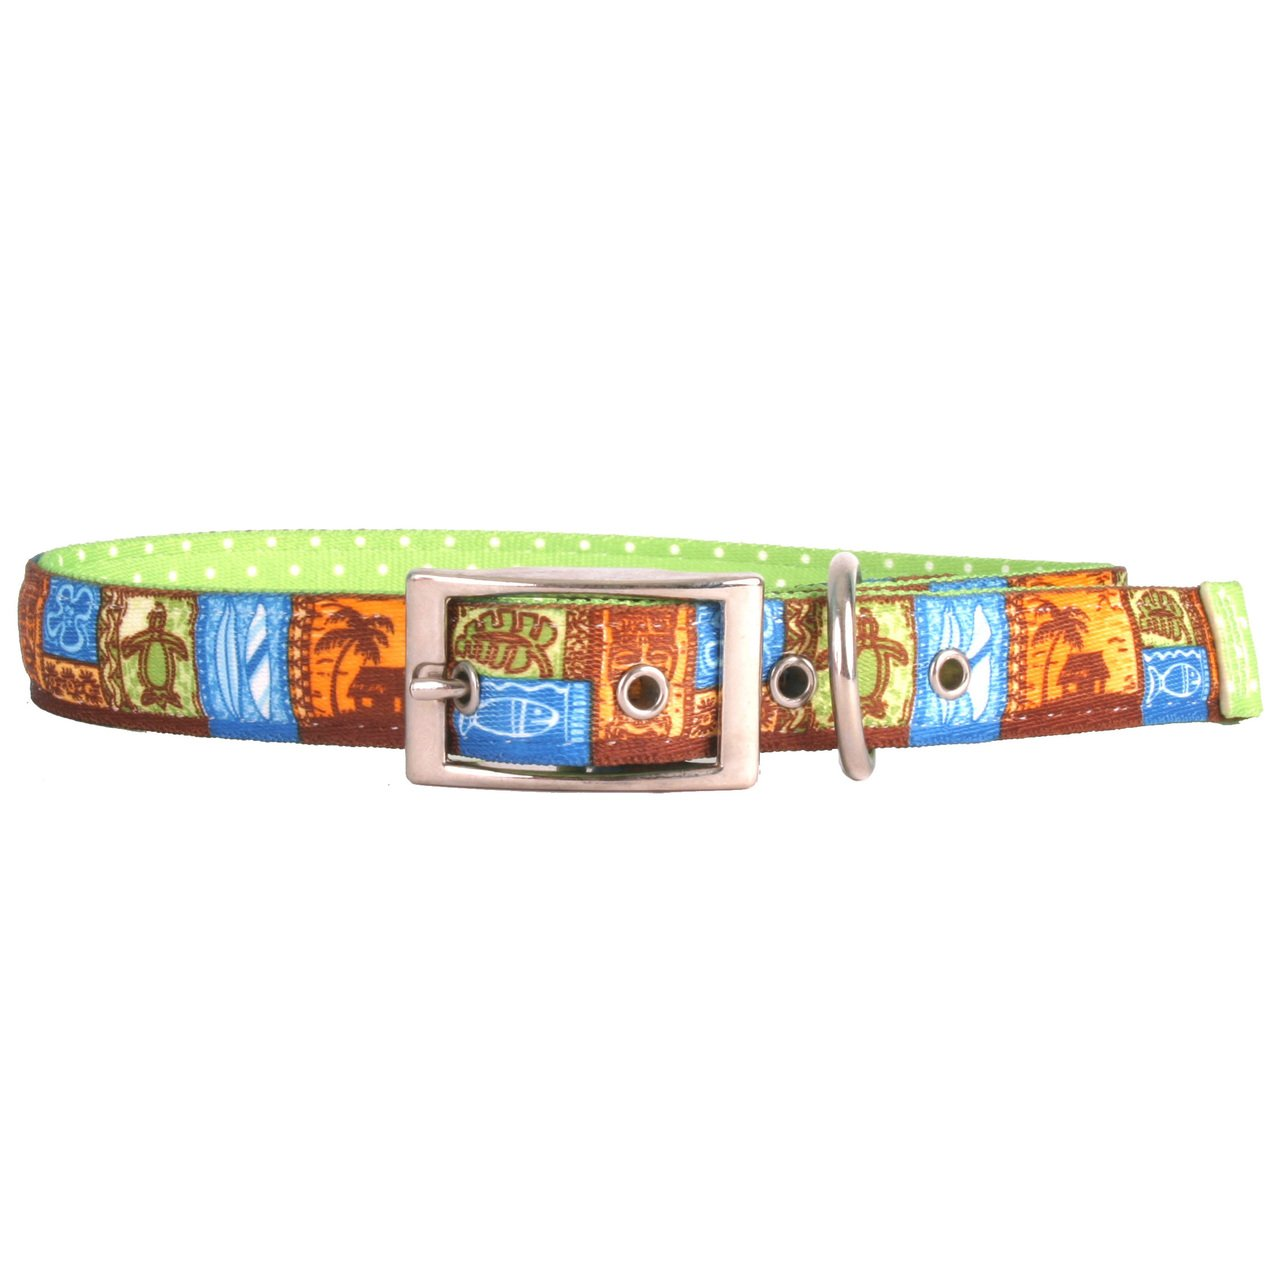 Yellow Dog Design Tiki Print Uptown Dog Collar-Size Medium-1 inch Wide and fits Neck Sizes 15 to 18.5 inches by Yellow Dog Design